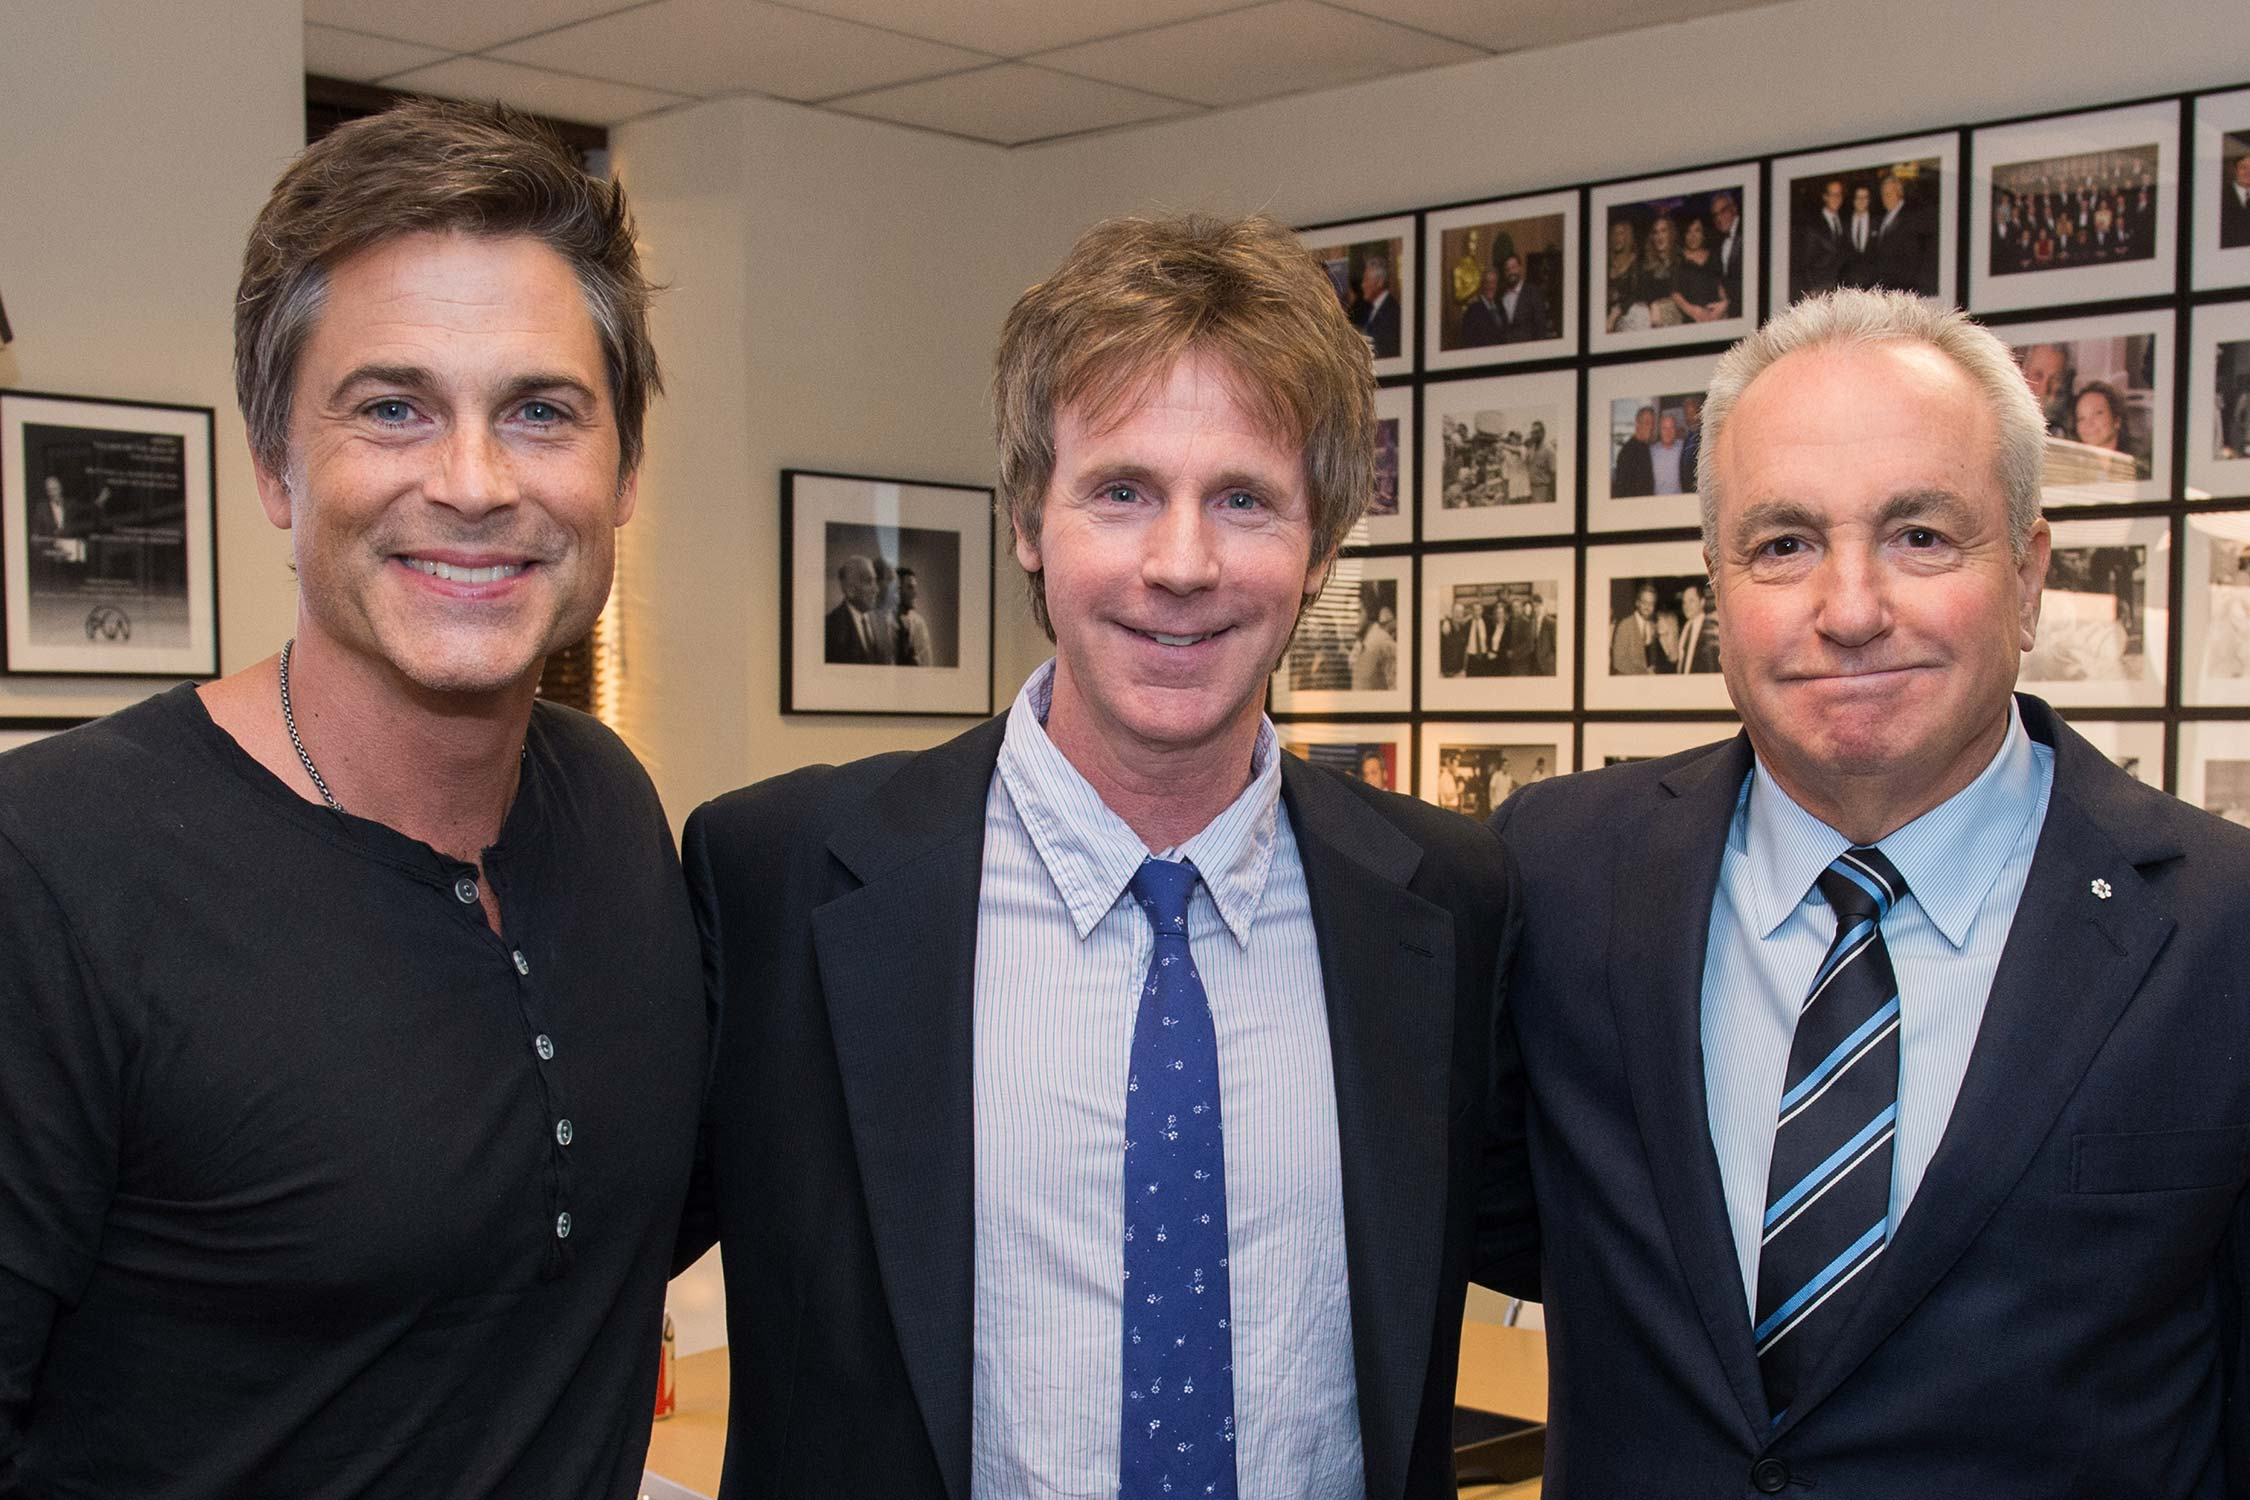 Rob Lowe and Dana Carvey before the event.